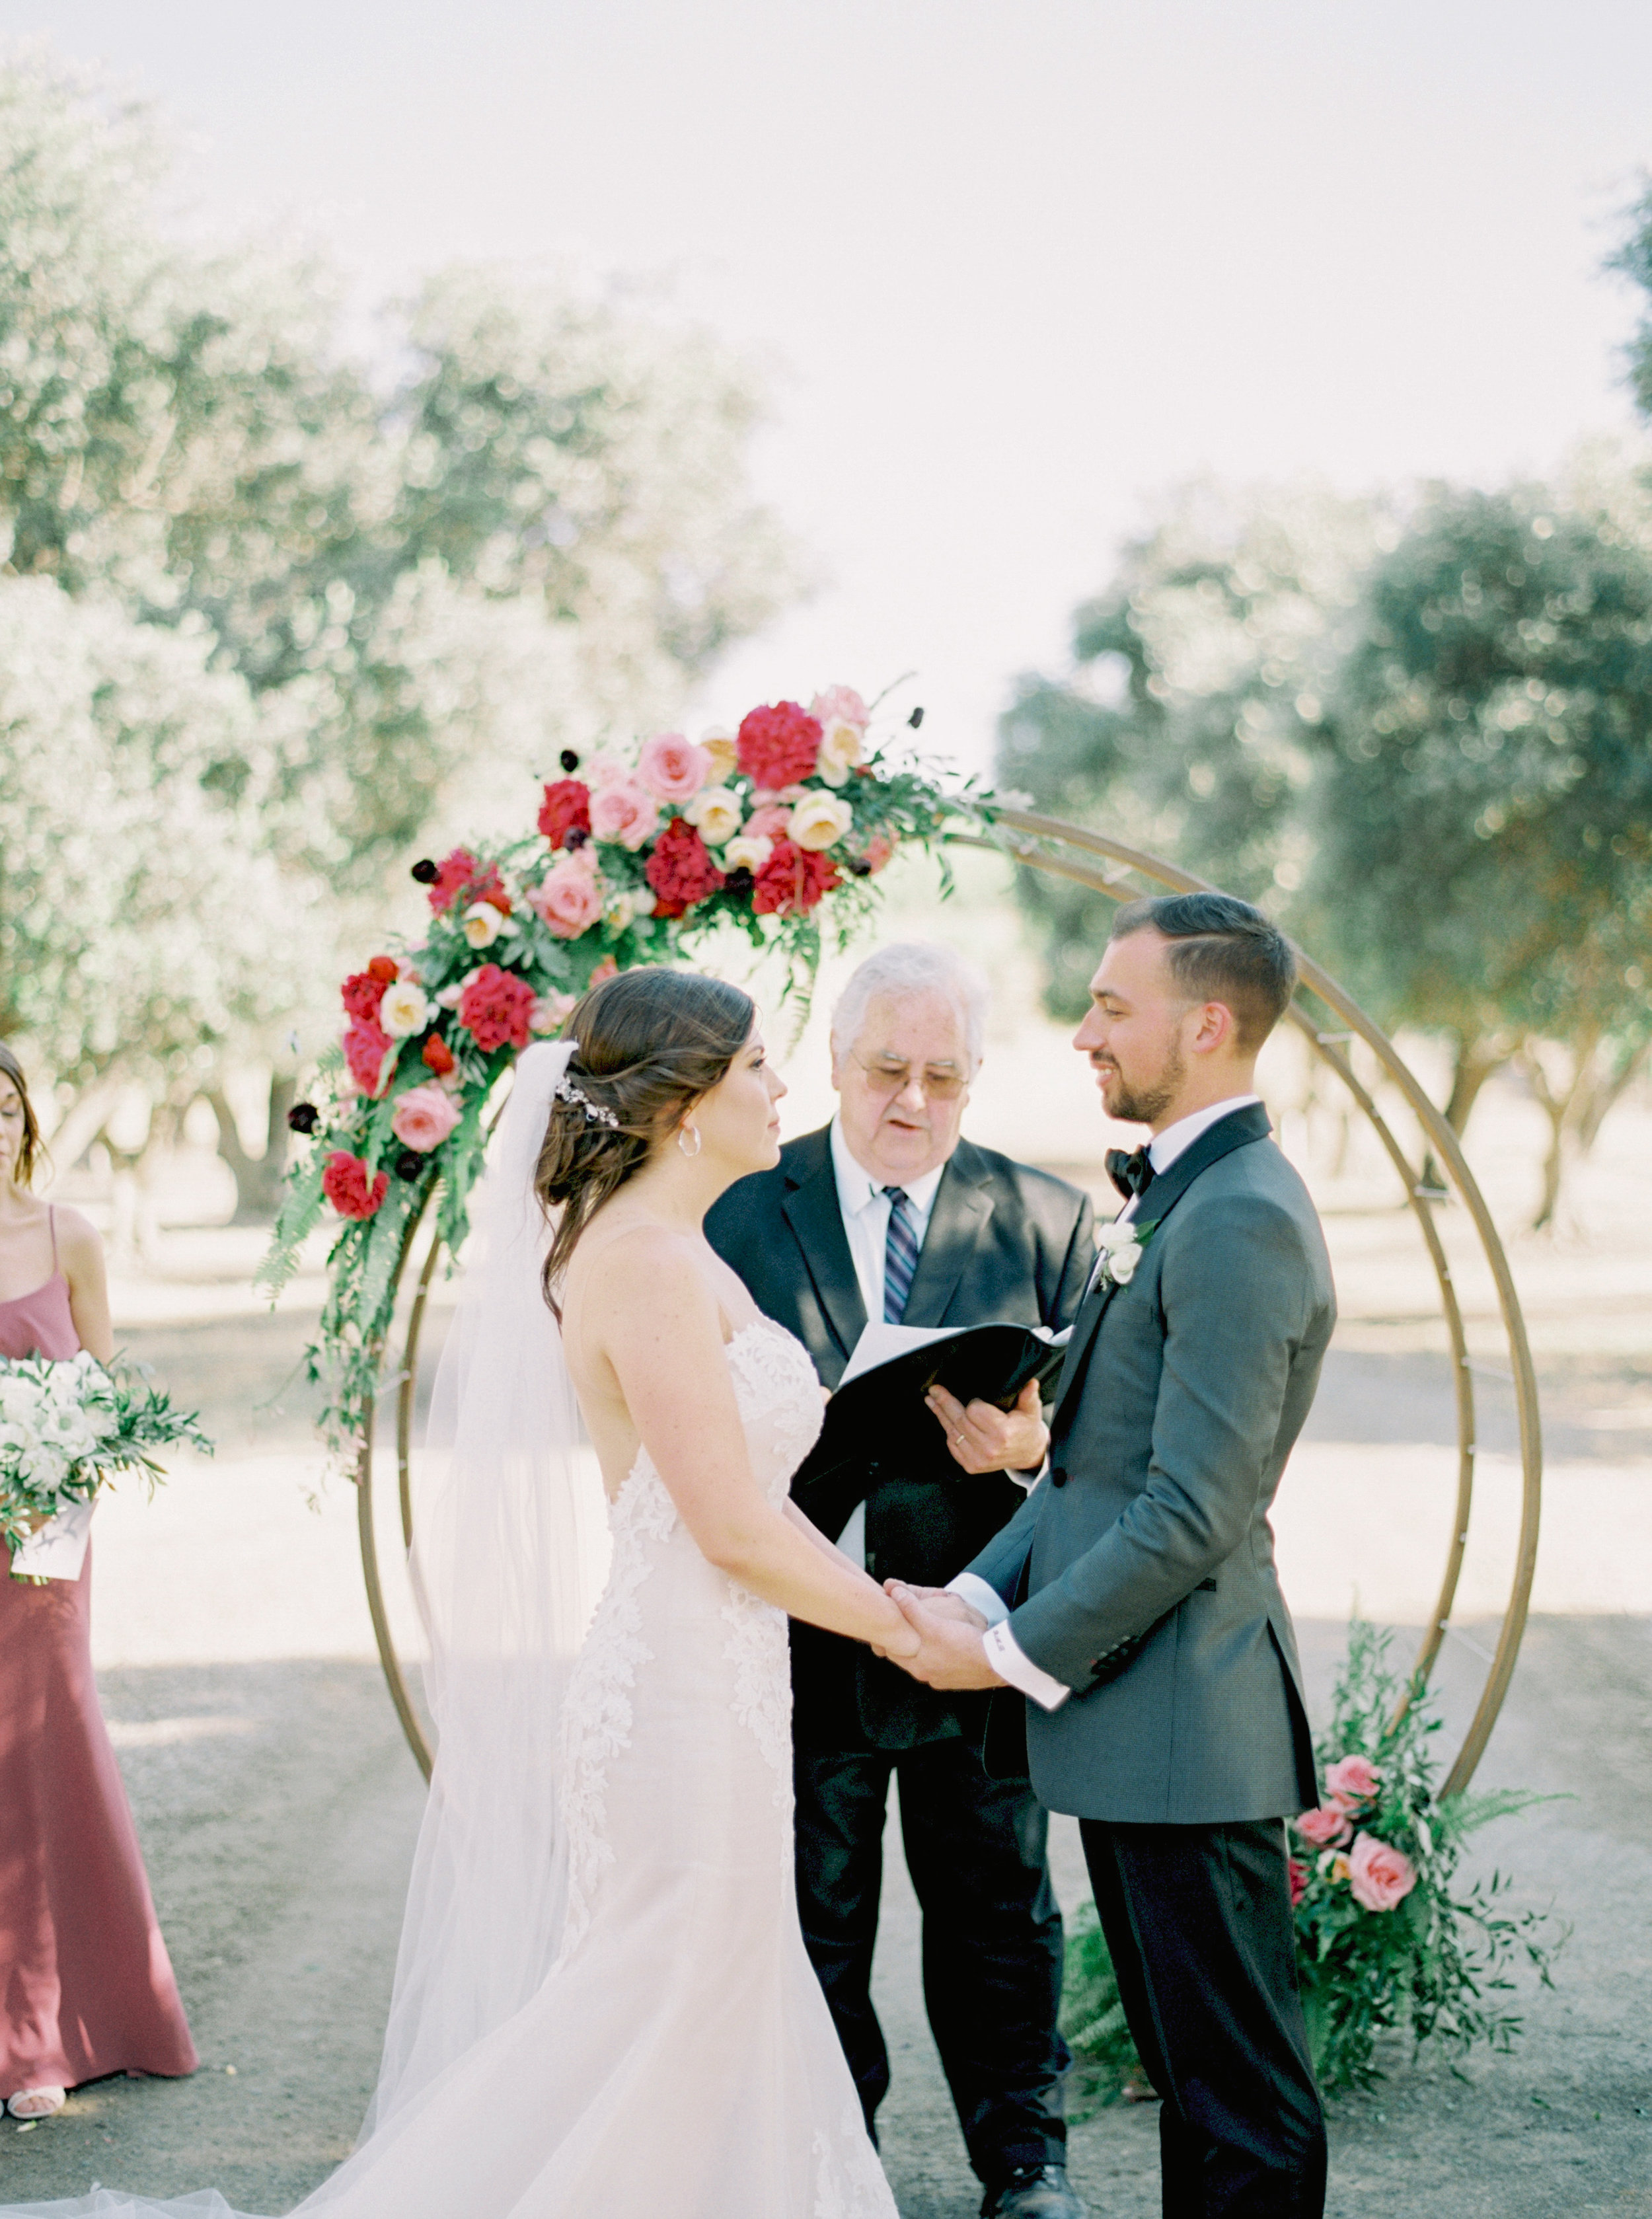 This-Love-of-Yours-Lauren-and-Ryan-Wedding-276.jpg